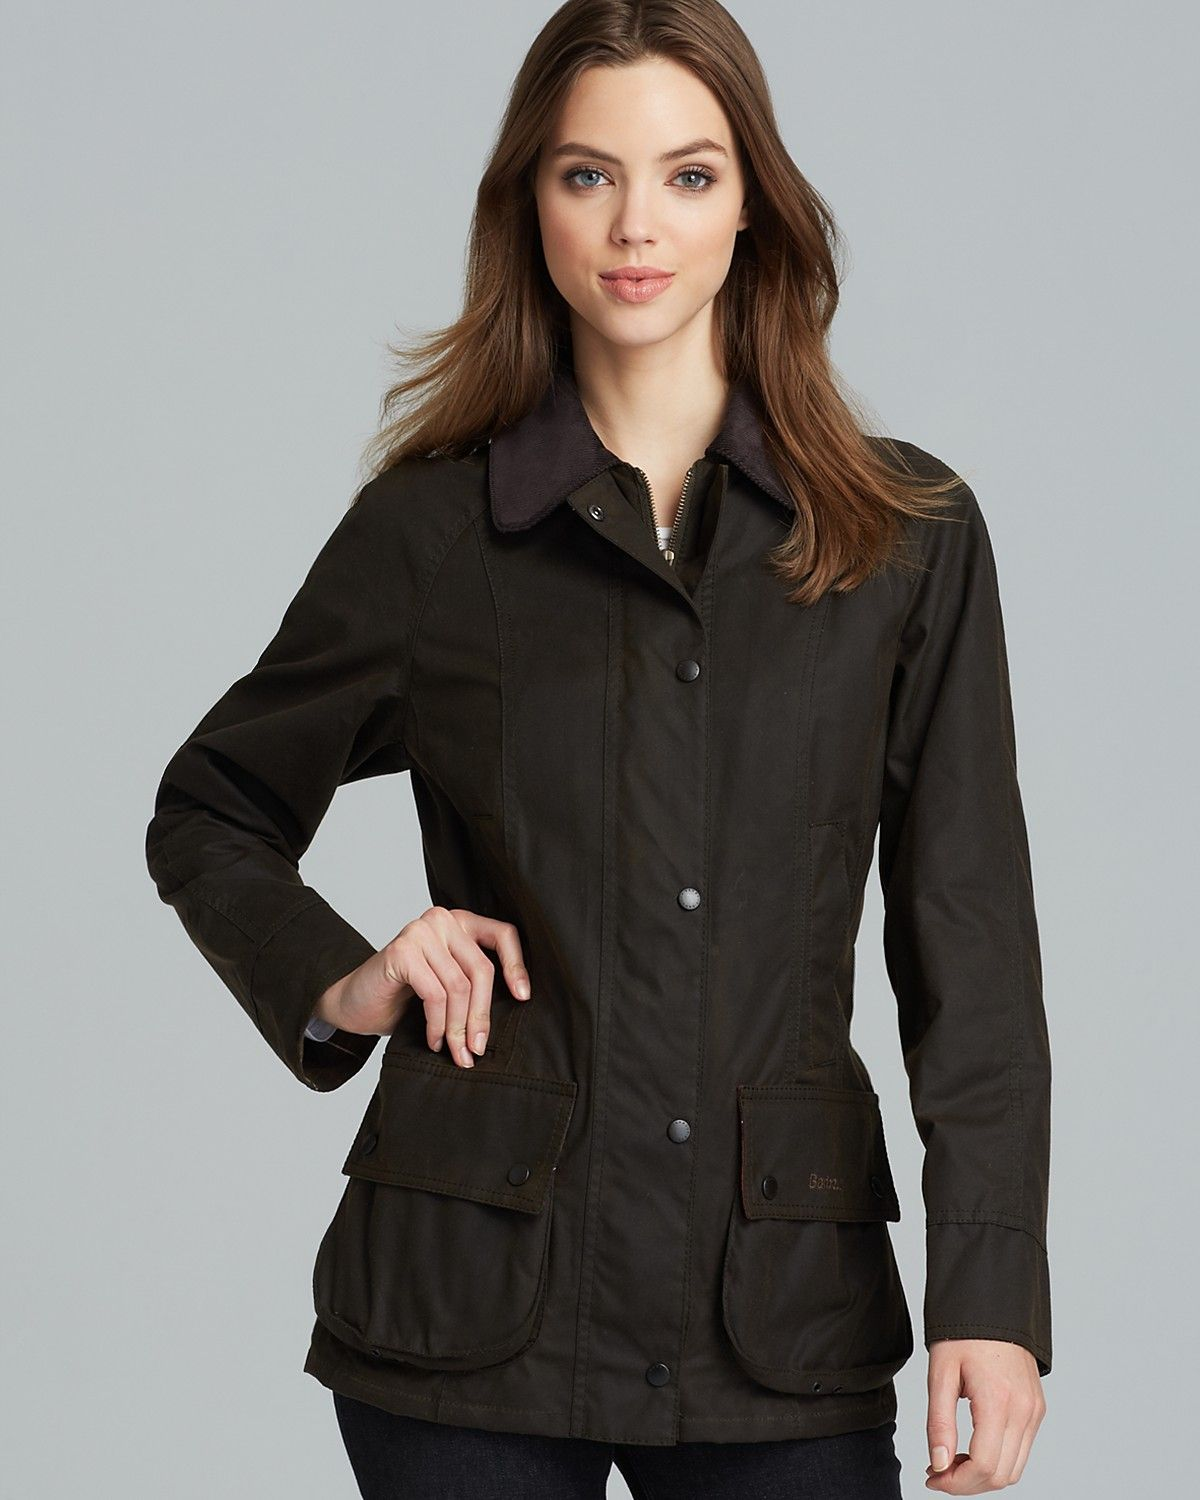 Barbour Women's Beadnell Jacket Sale